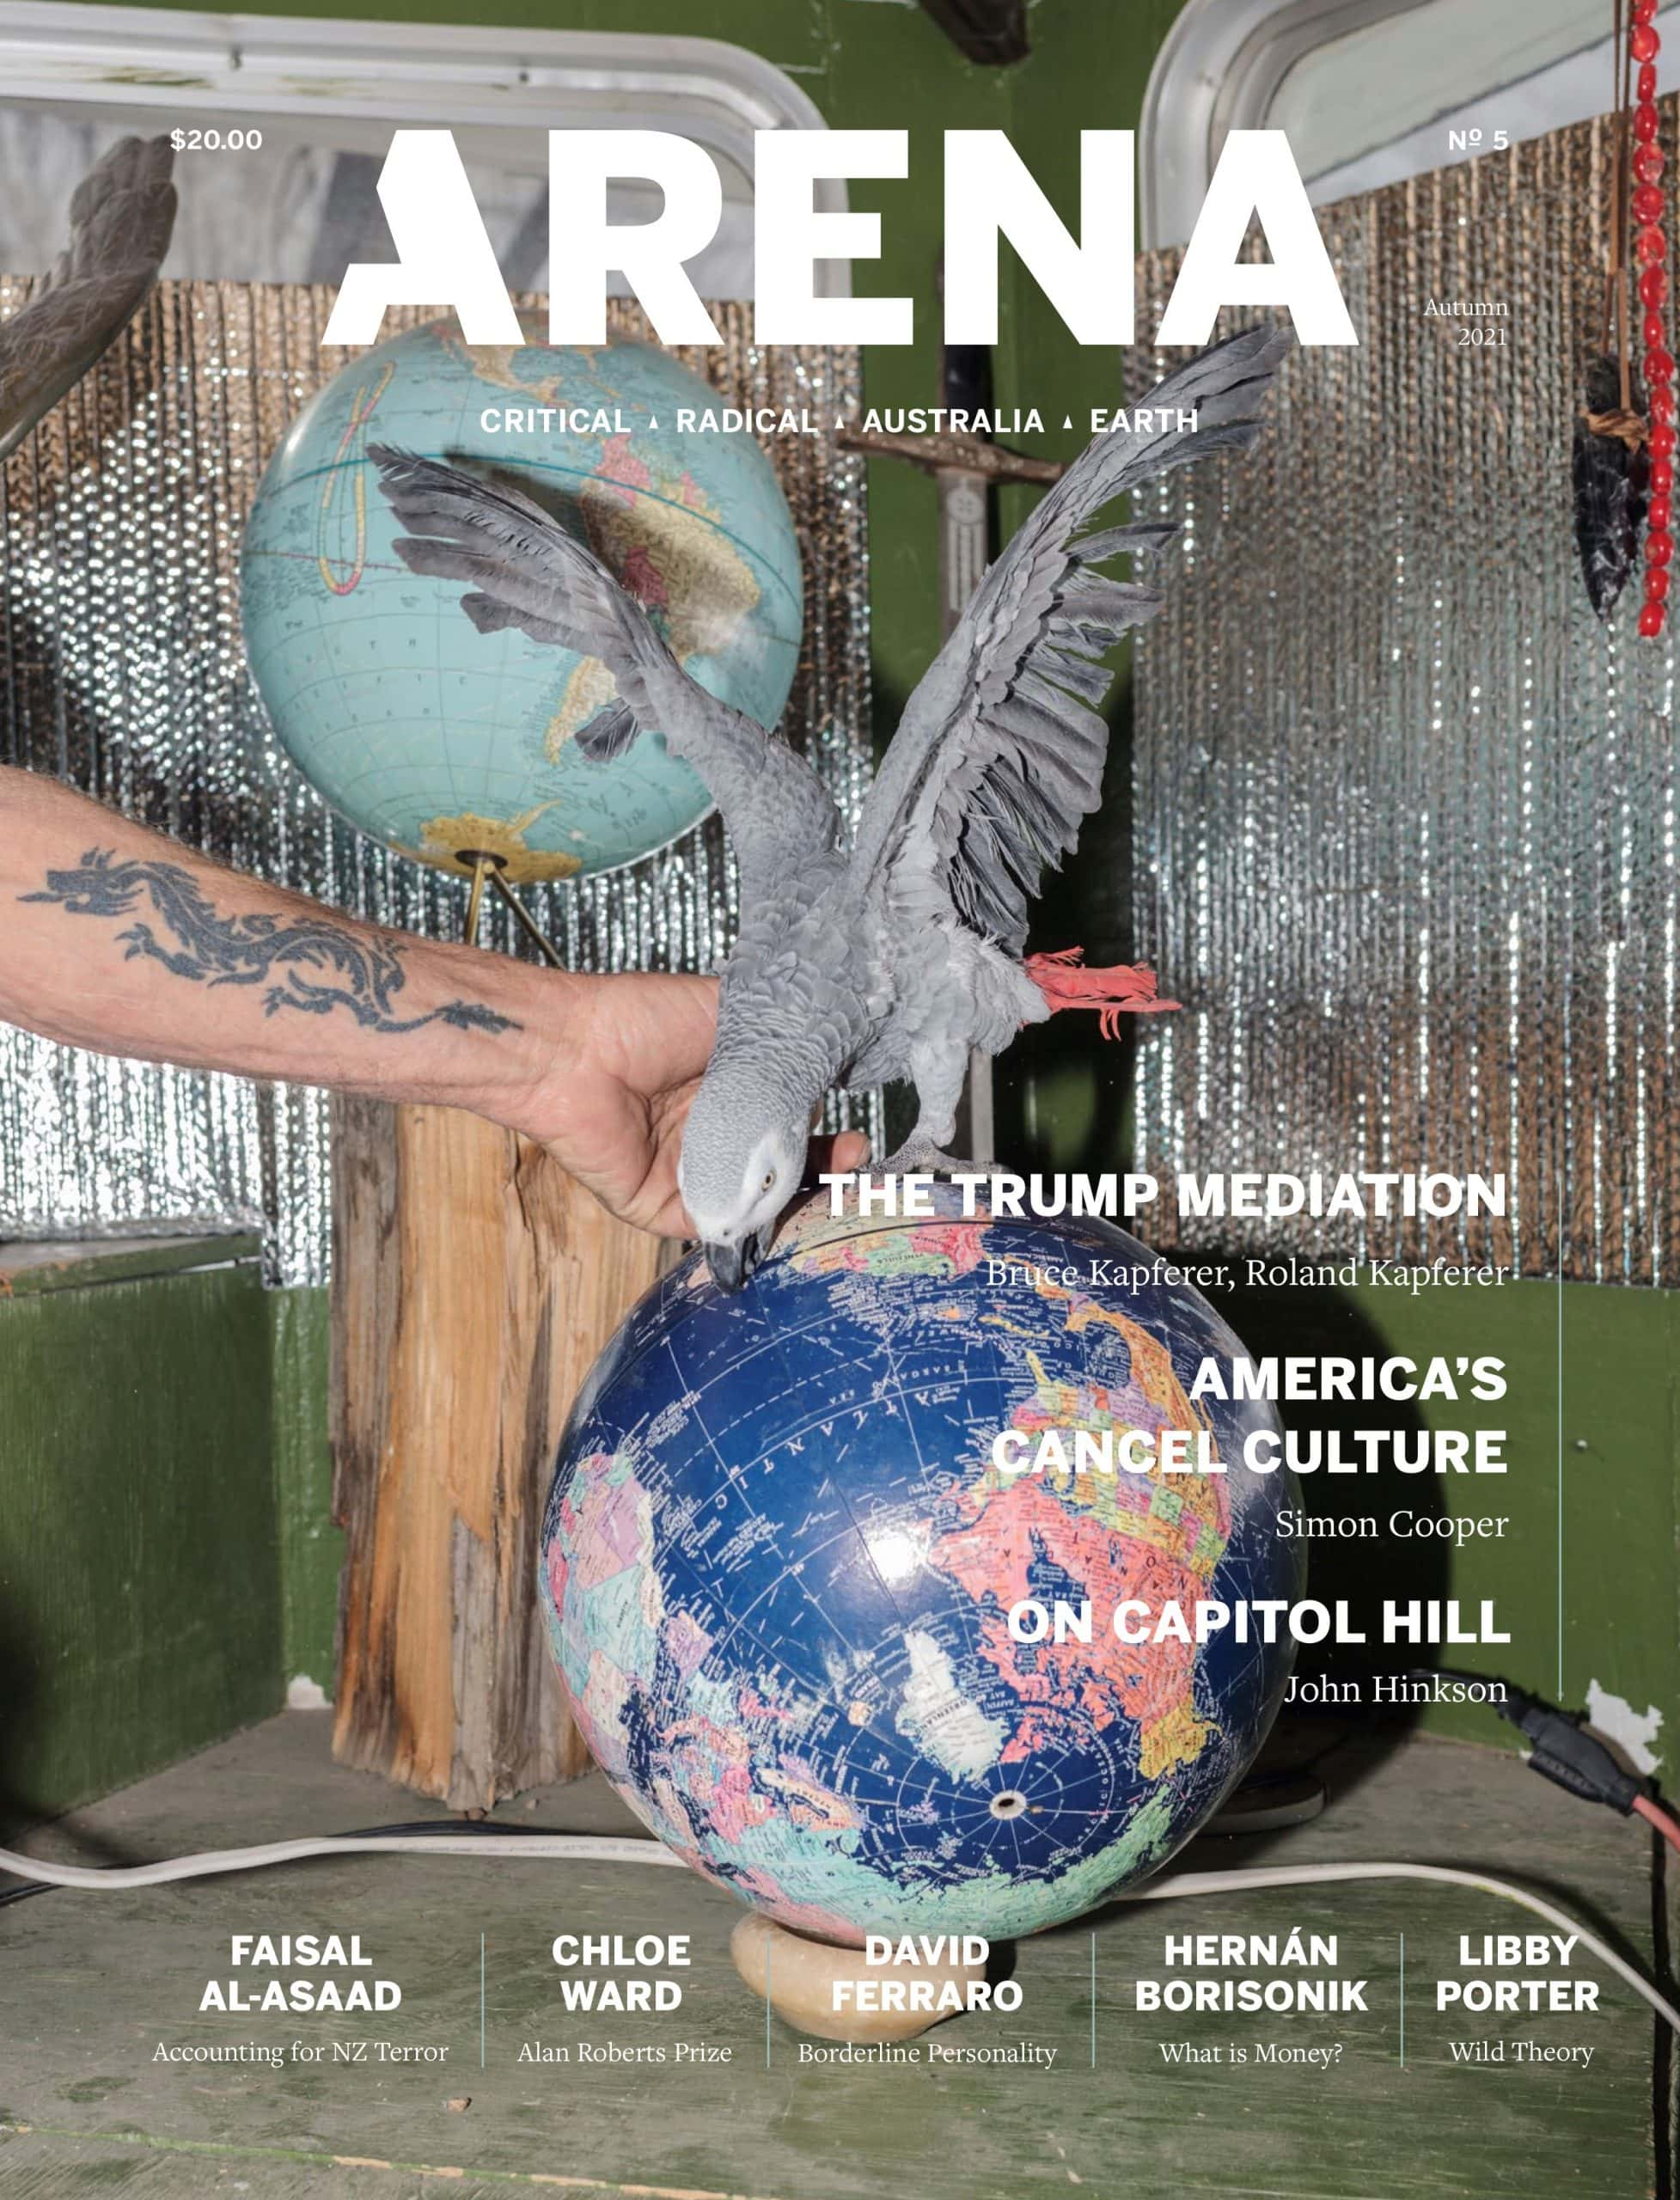 Arena Issue 5 cover, image courtesy of Arena